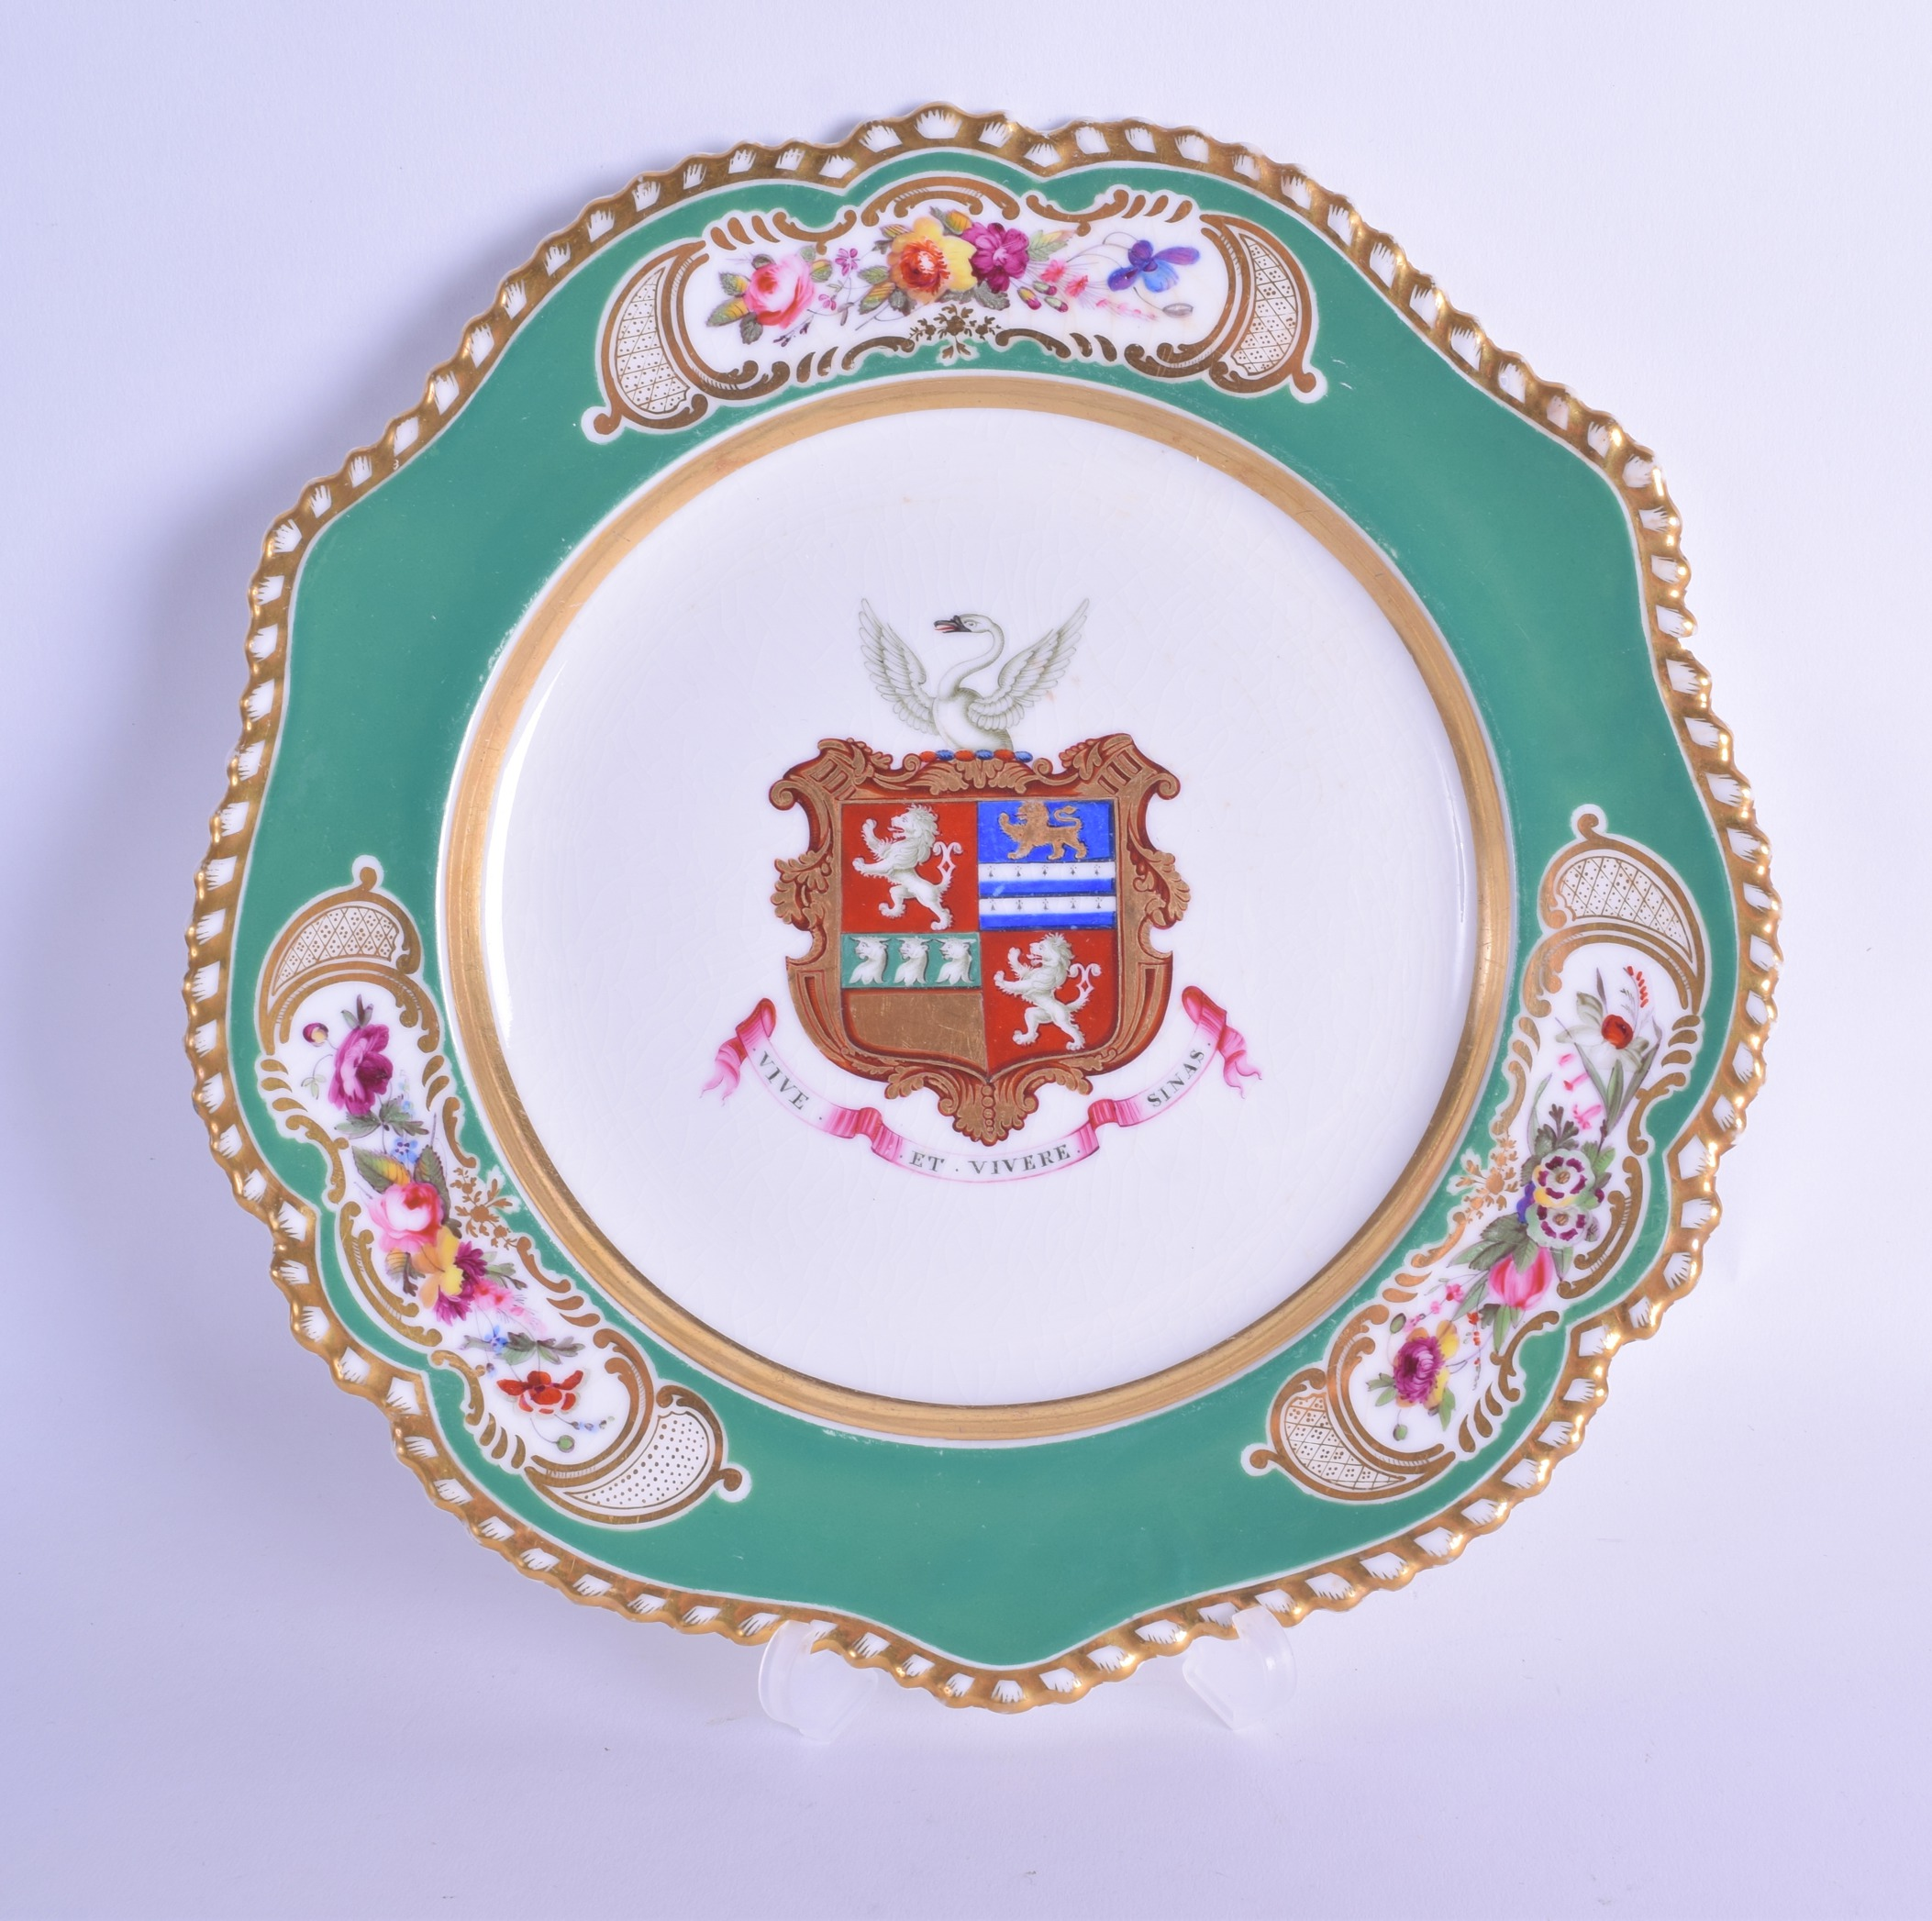 Lot 129 - Early 19th c. Chamberlains Worcester armorial plate painted with the Arms of Attwood, with a swan